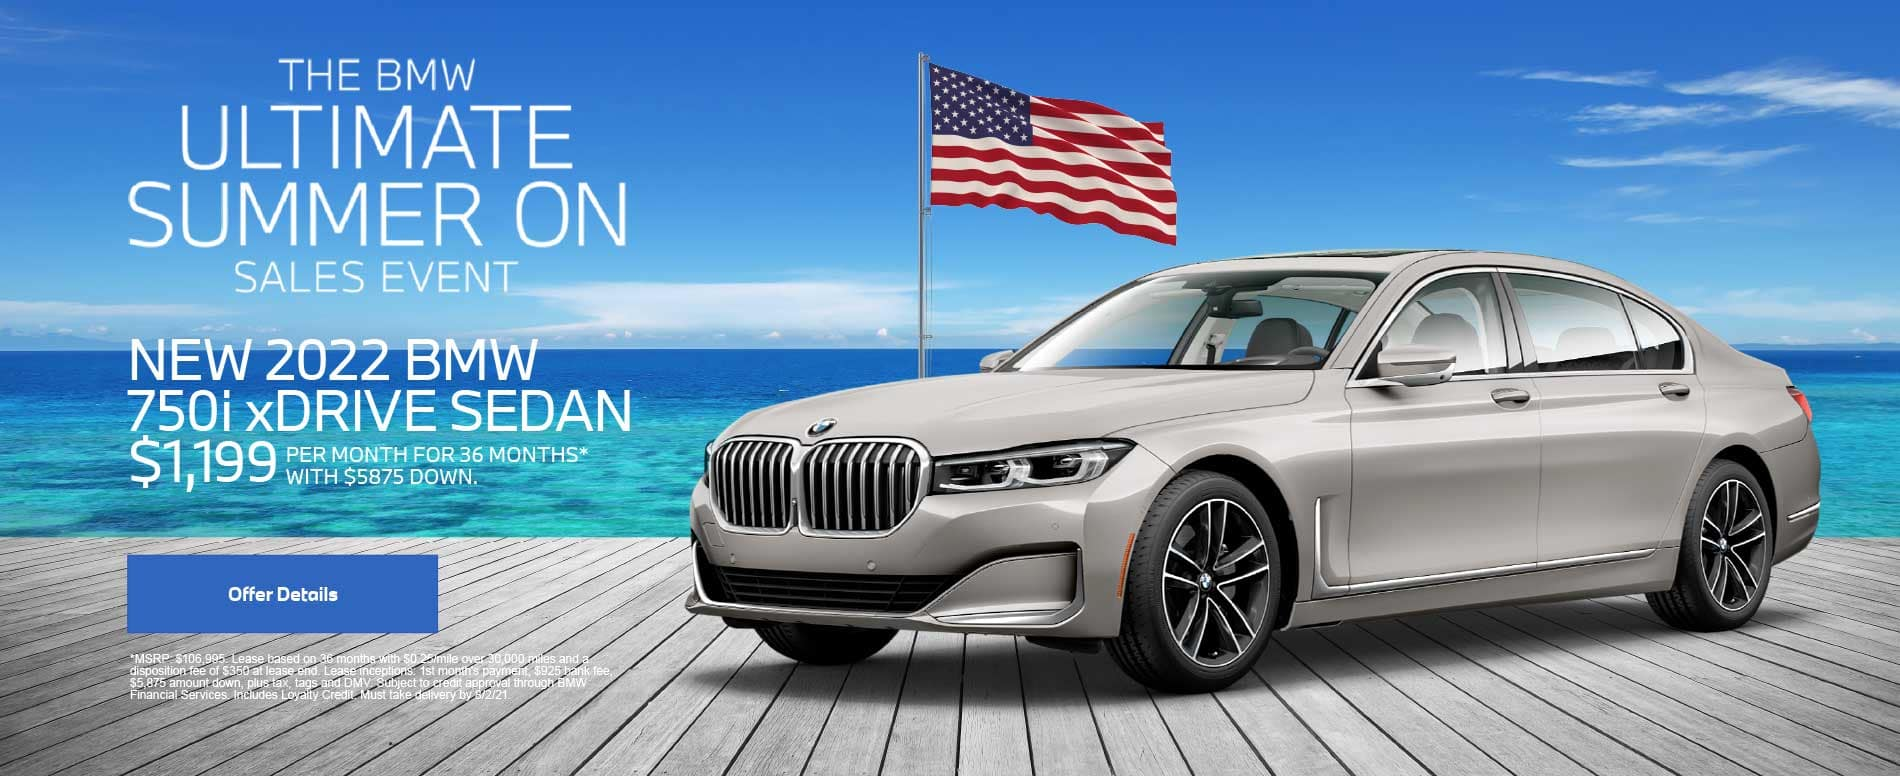 NEW 2022 BMW 750i xDRIVE SEDAN $1,199 PER MONTH FOR 36 MONTHS* WITH $5875 DOWN.